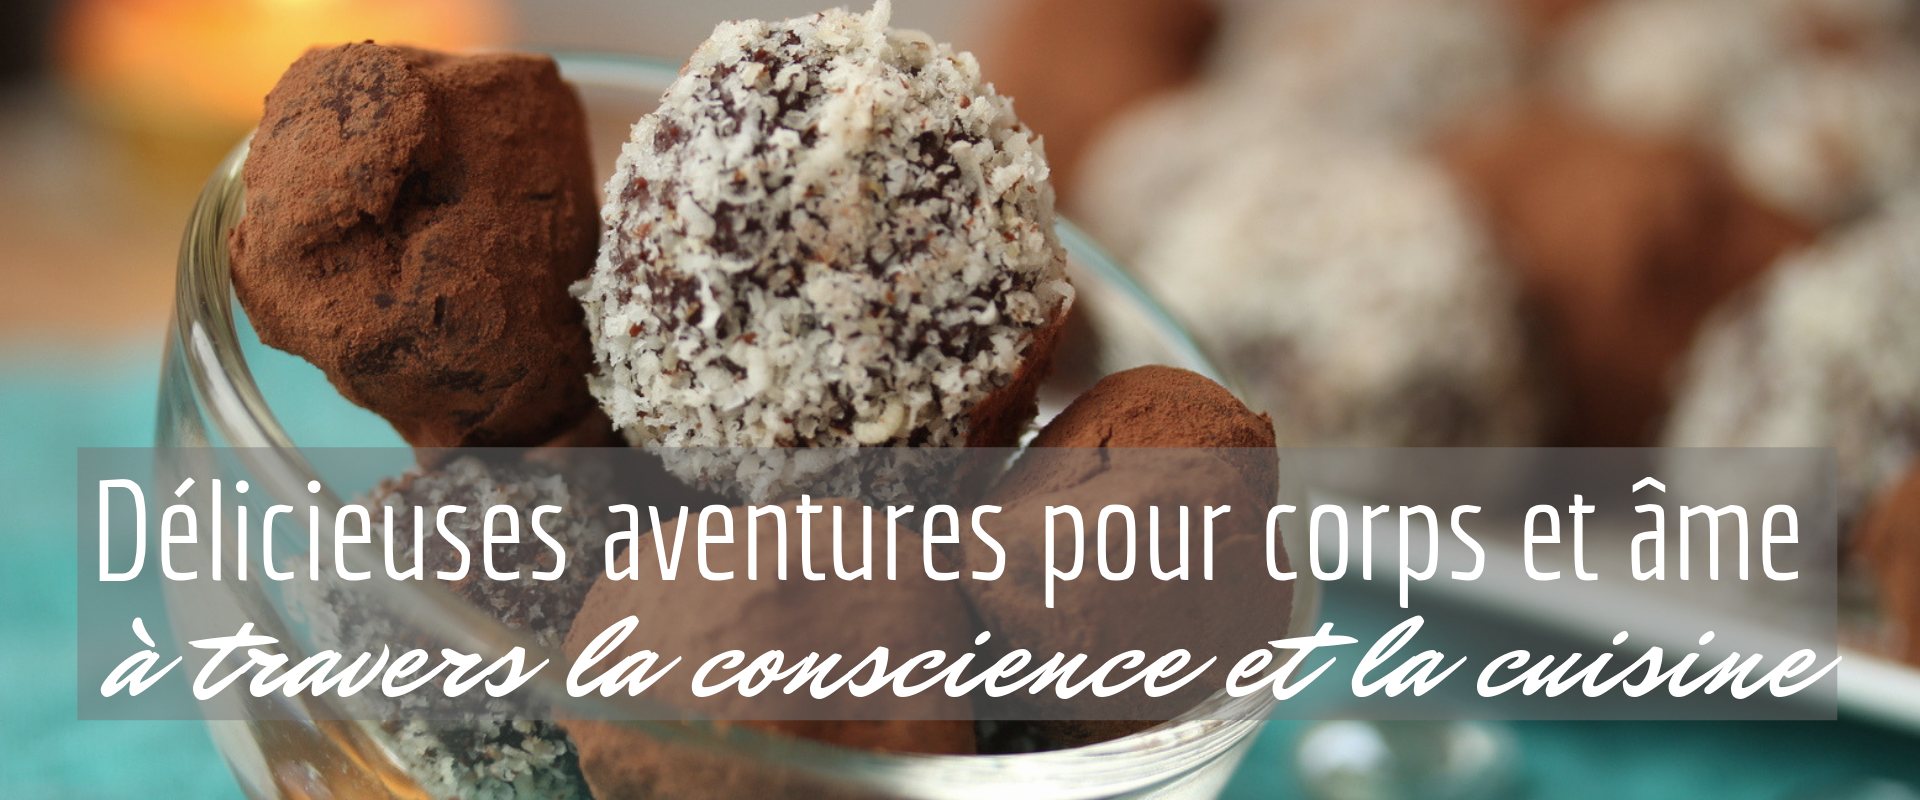 https://www.alimentation-integrative.fr/wp-content/uploads/2019/07/delicieuses-aventures-1920x800.png